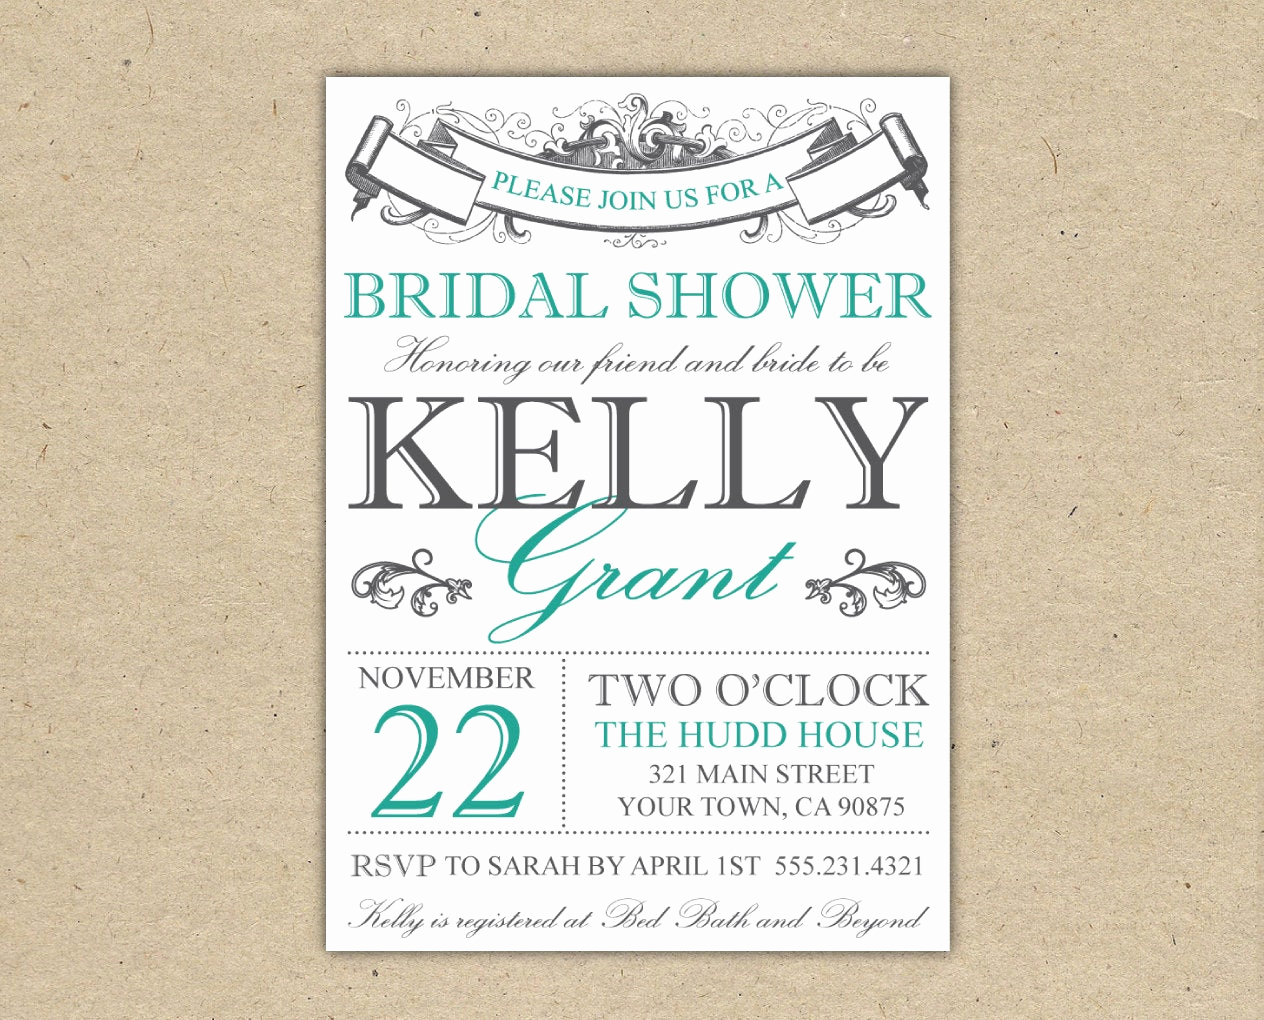 Bridal Shower Invitation Templates Lovely Chandeliers & Pendant Lights